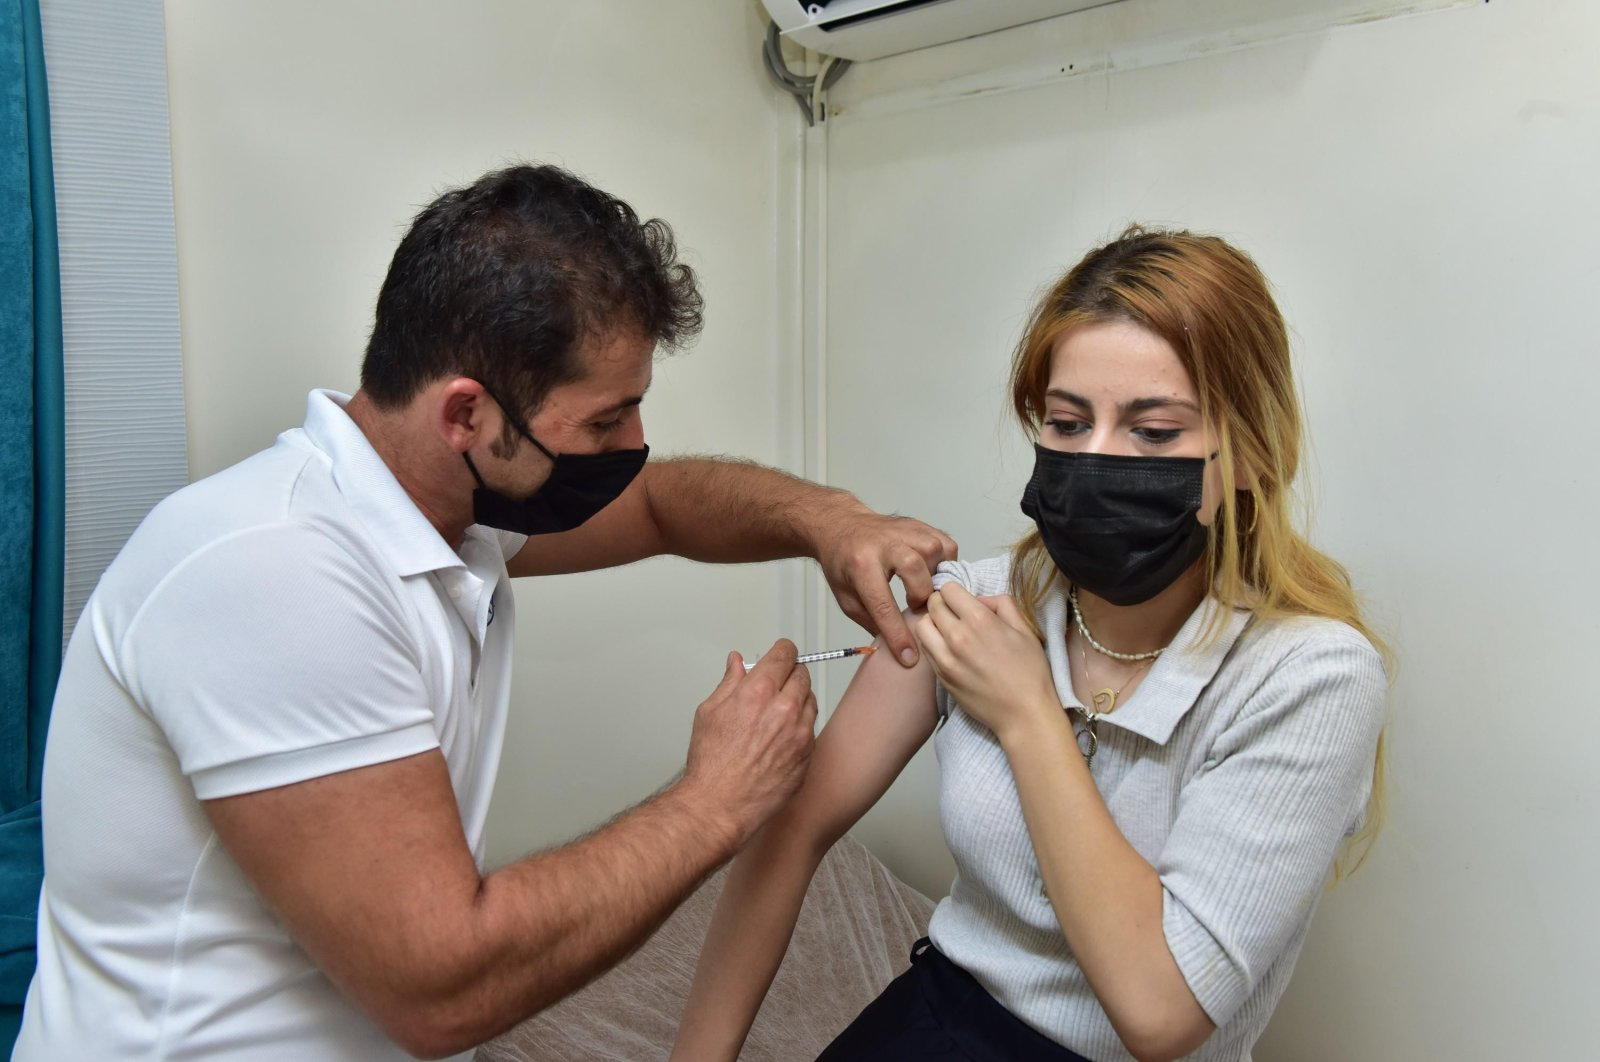 A woman gets vaccinated at a vaccination spot, in Kepez, Antalya, in southern Turkey, Aug. 17, 2021. (IHA PHOTO)